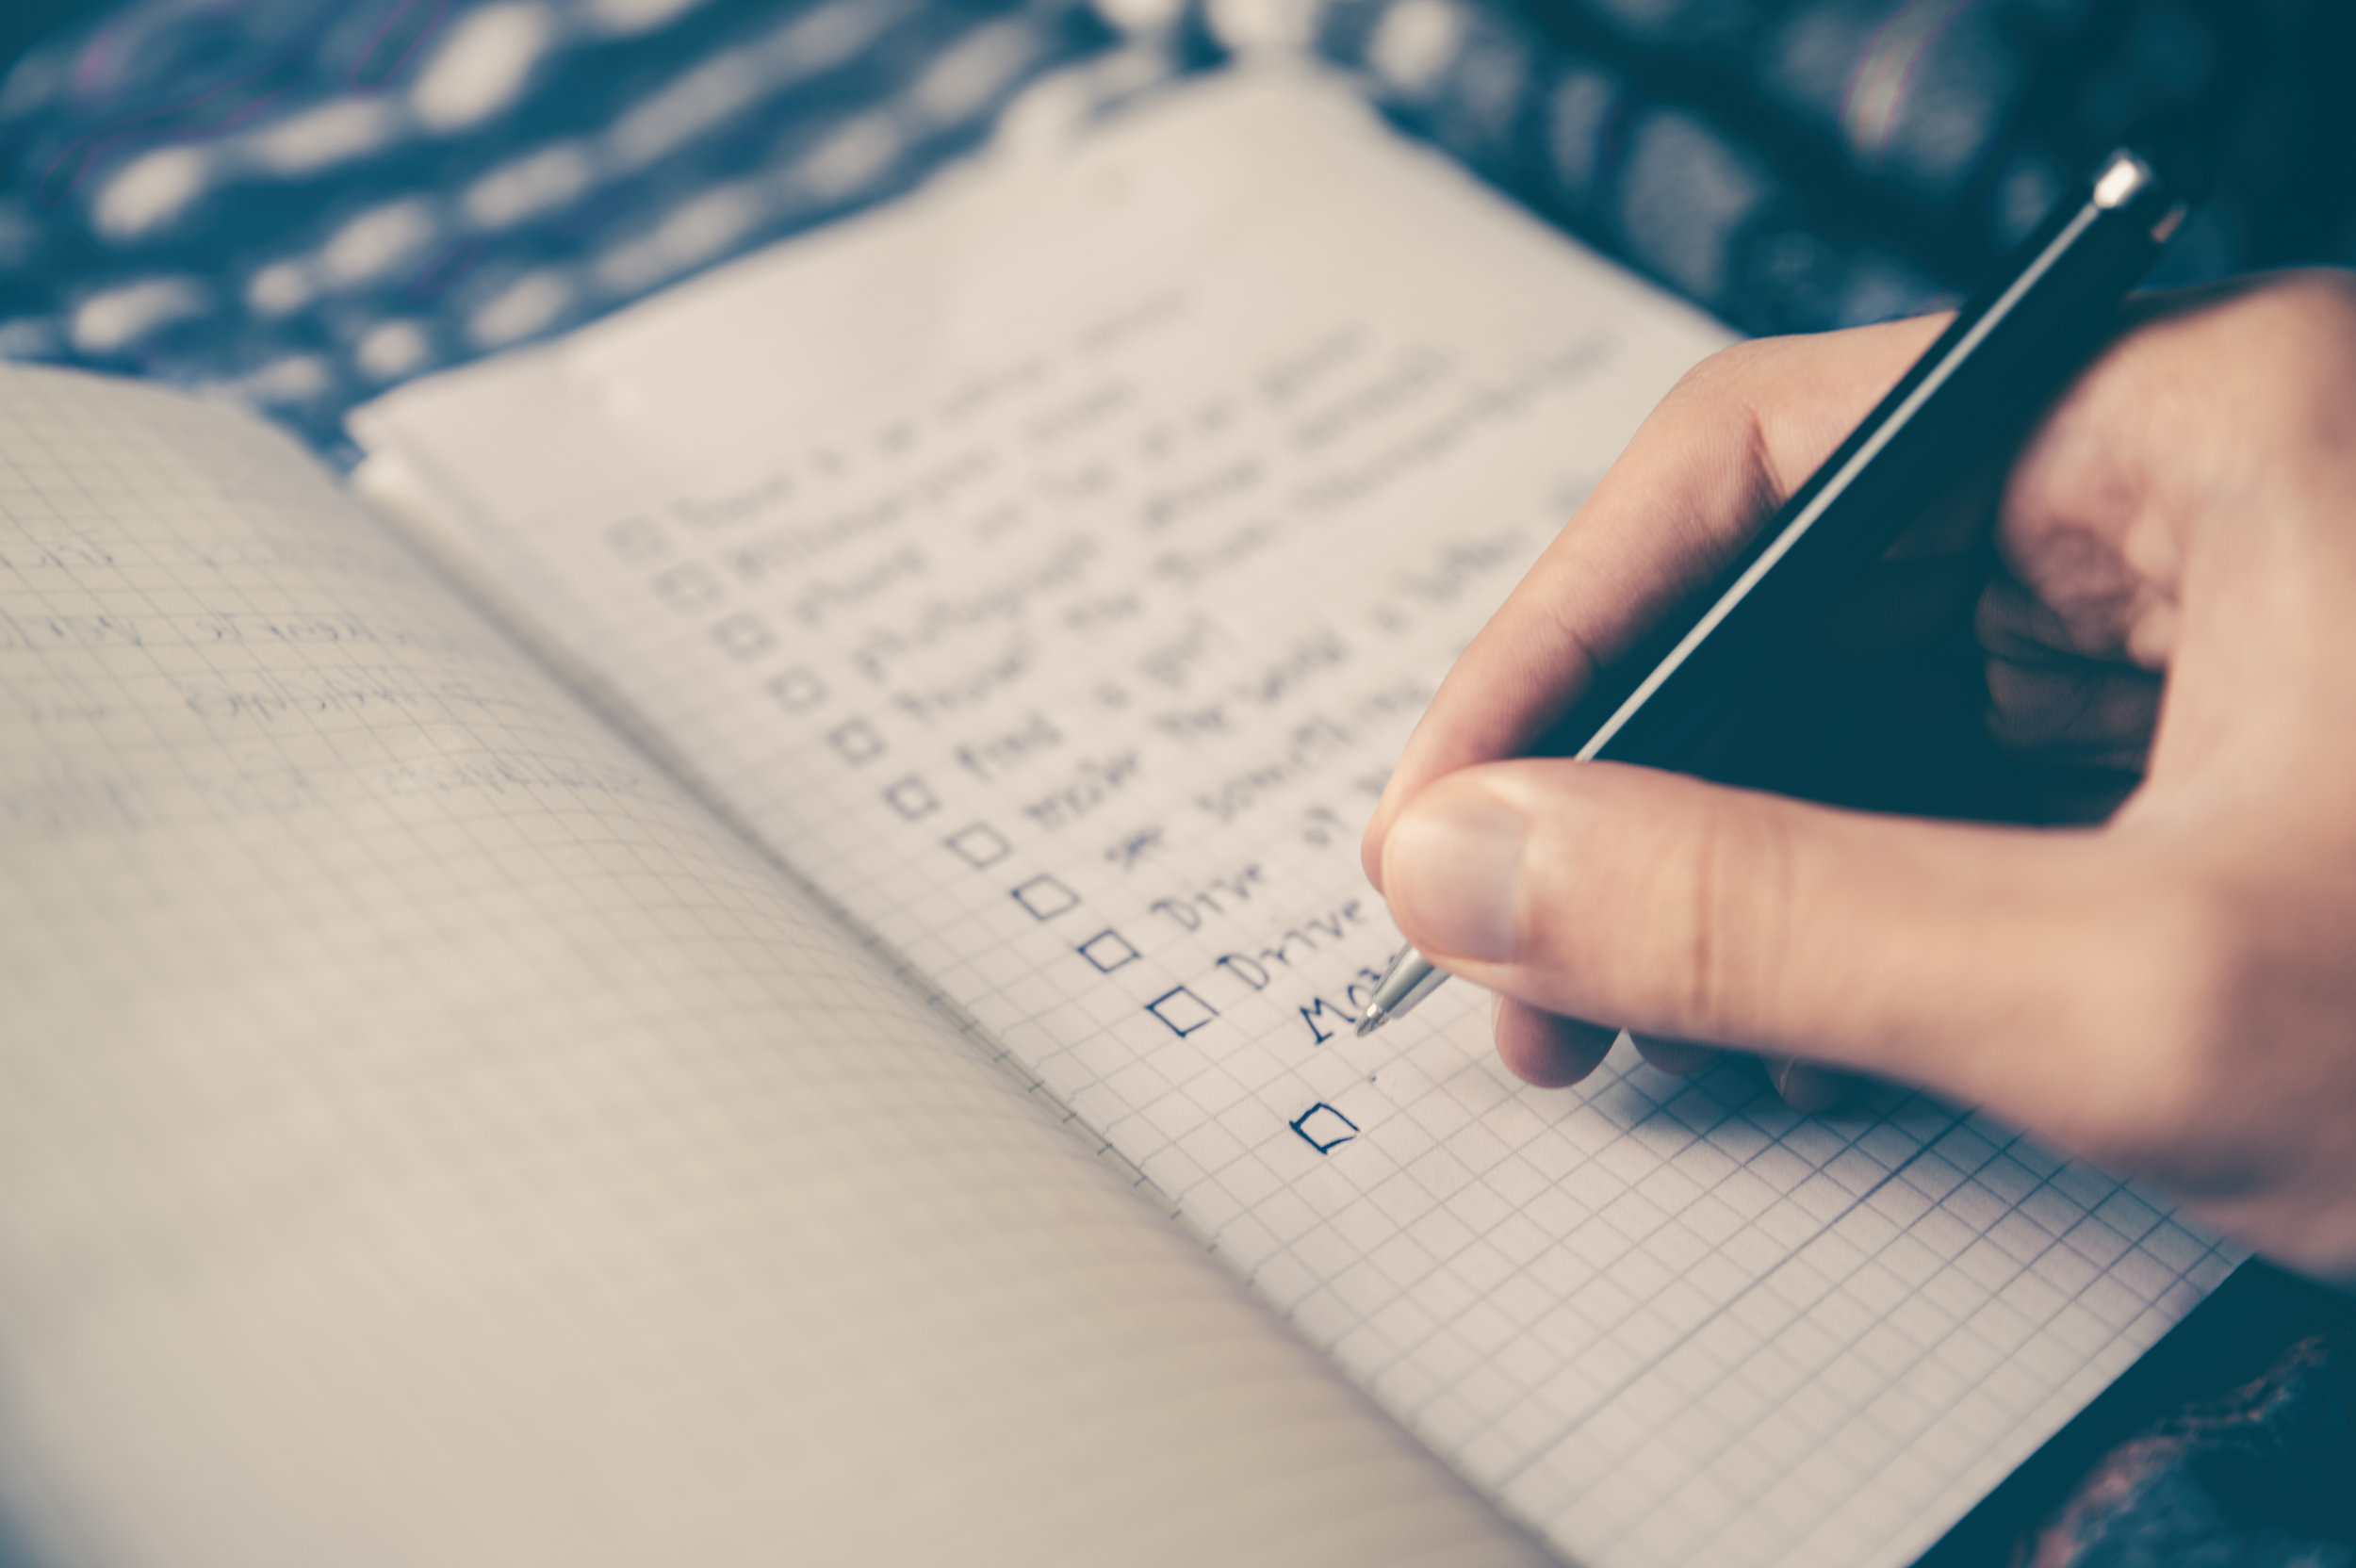 WHSSPA State Convention Checklist - Work down the checklist to make sure you have everything completed in time for convention.We hope these suggestions are particularly helpful to first time advisers.